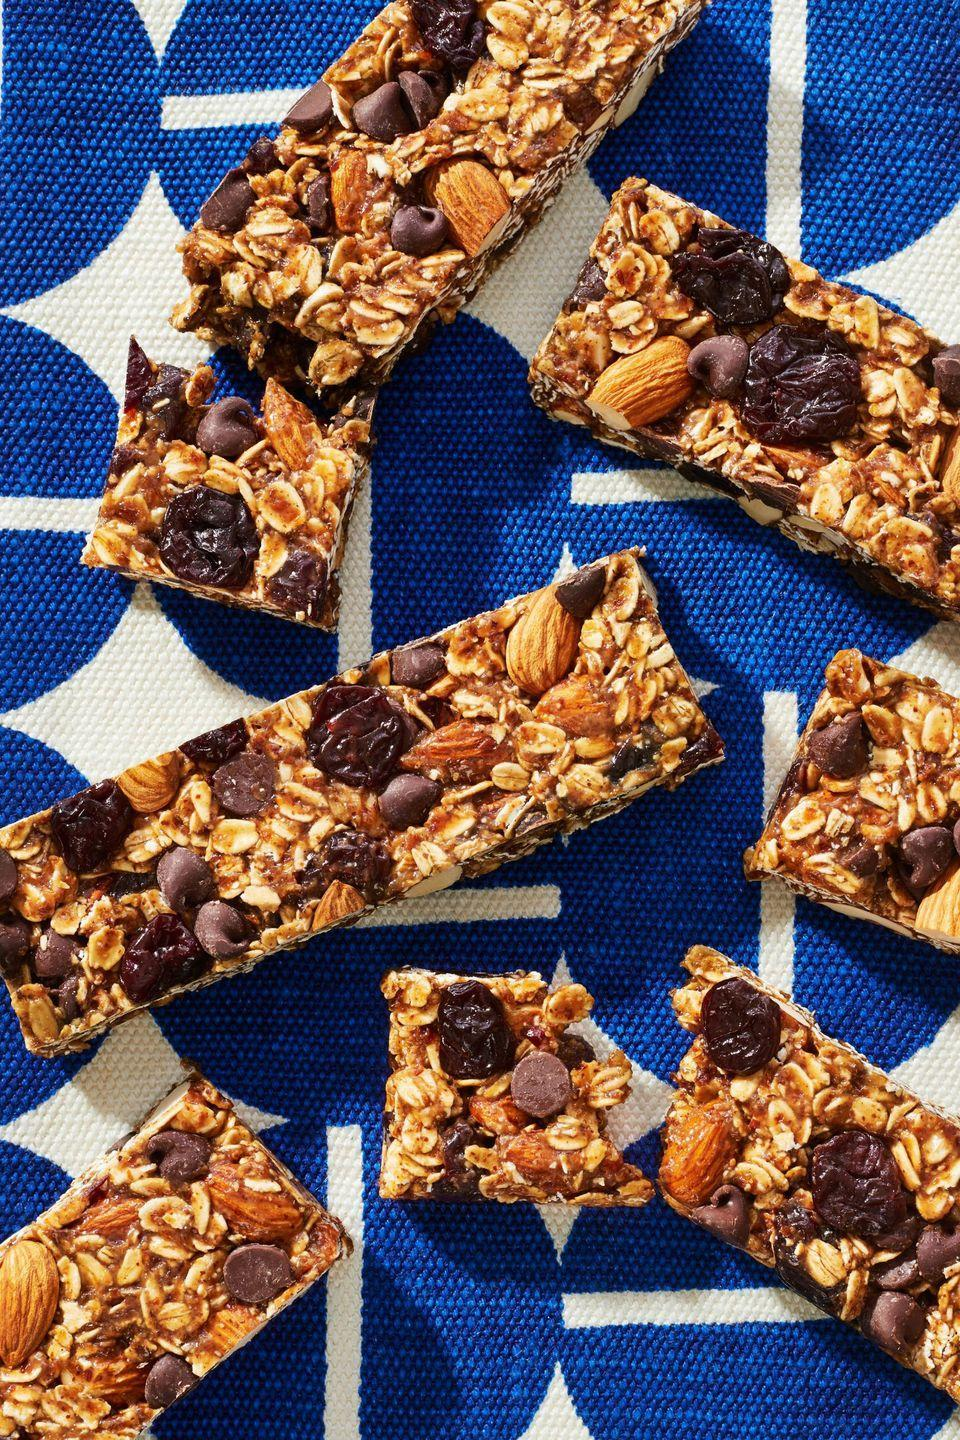 "<p>Store-bought granola bars are packed with sugar, so making your own cuts back on unnecessary ingredients and ensures they have something healthy to eat on-the-go.</p><p><em>Get the recipe at </em><em><a href=""https://www.redbookmag.com/food-recipes/advice/g2267/make-ahead-breakfasts/?slide=3"" rel=""nofollow noopener"" target=""_blank"" data-ylk=""slk:Redbook."" class=""link rapid-noclick-resp"">Redbook.</a></em></p>"